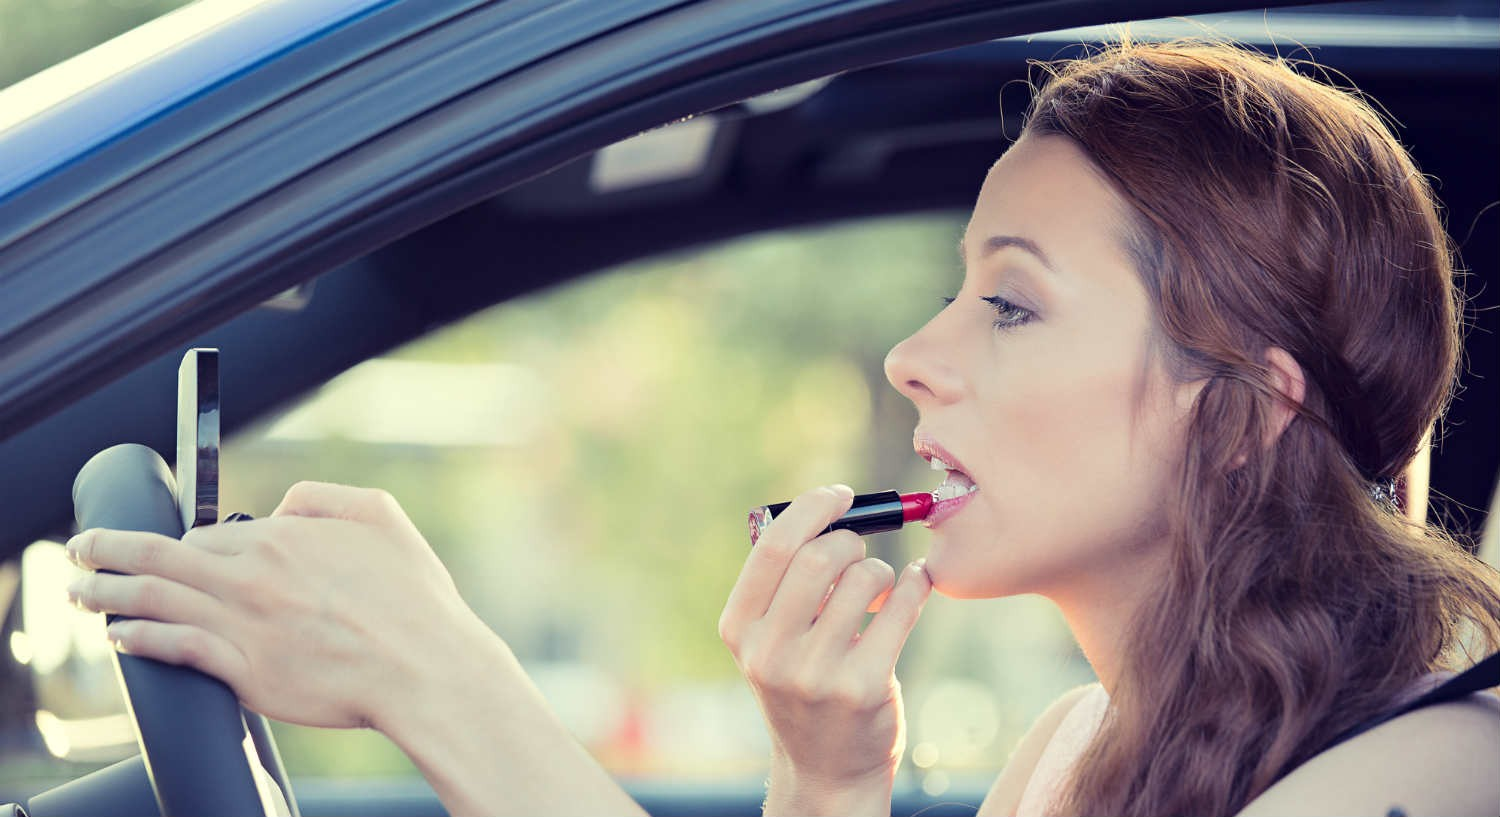 woman putting lipstick on in car